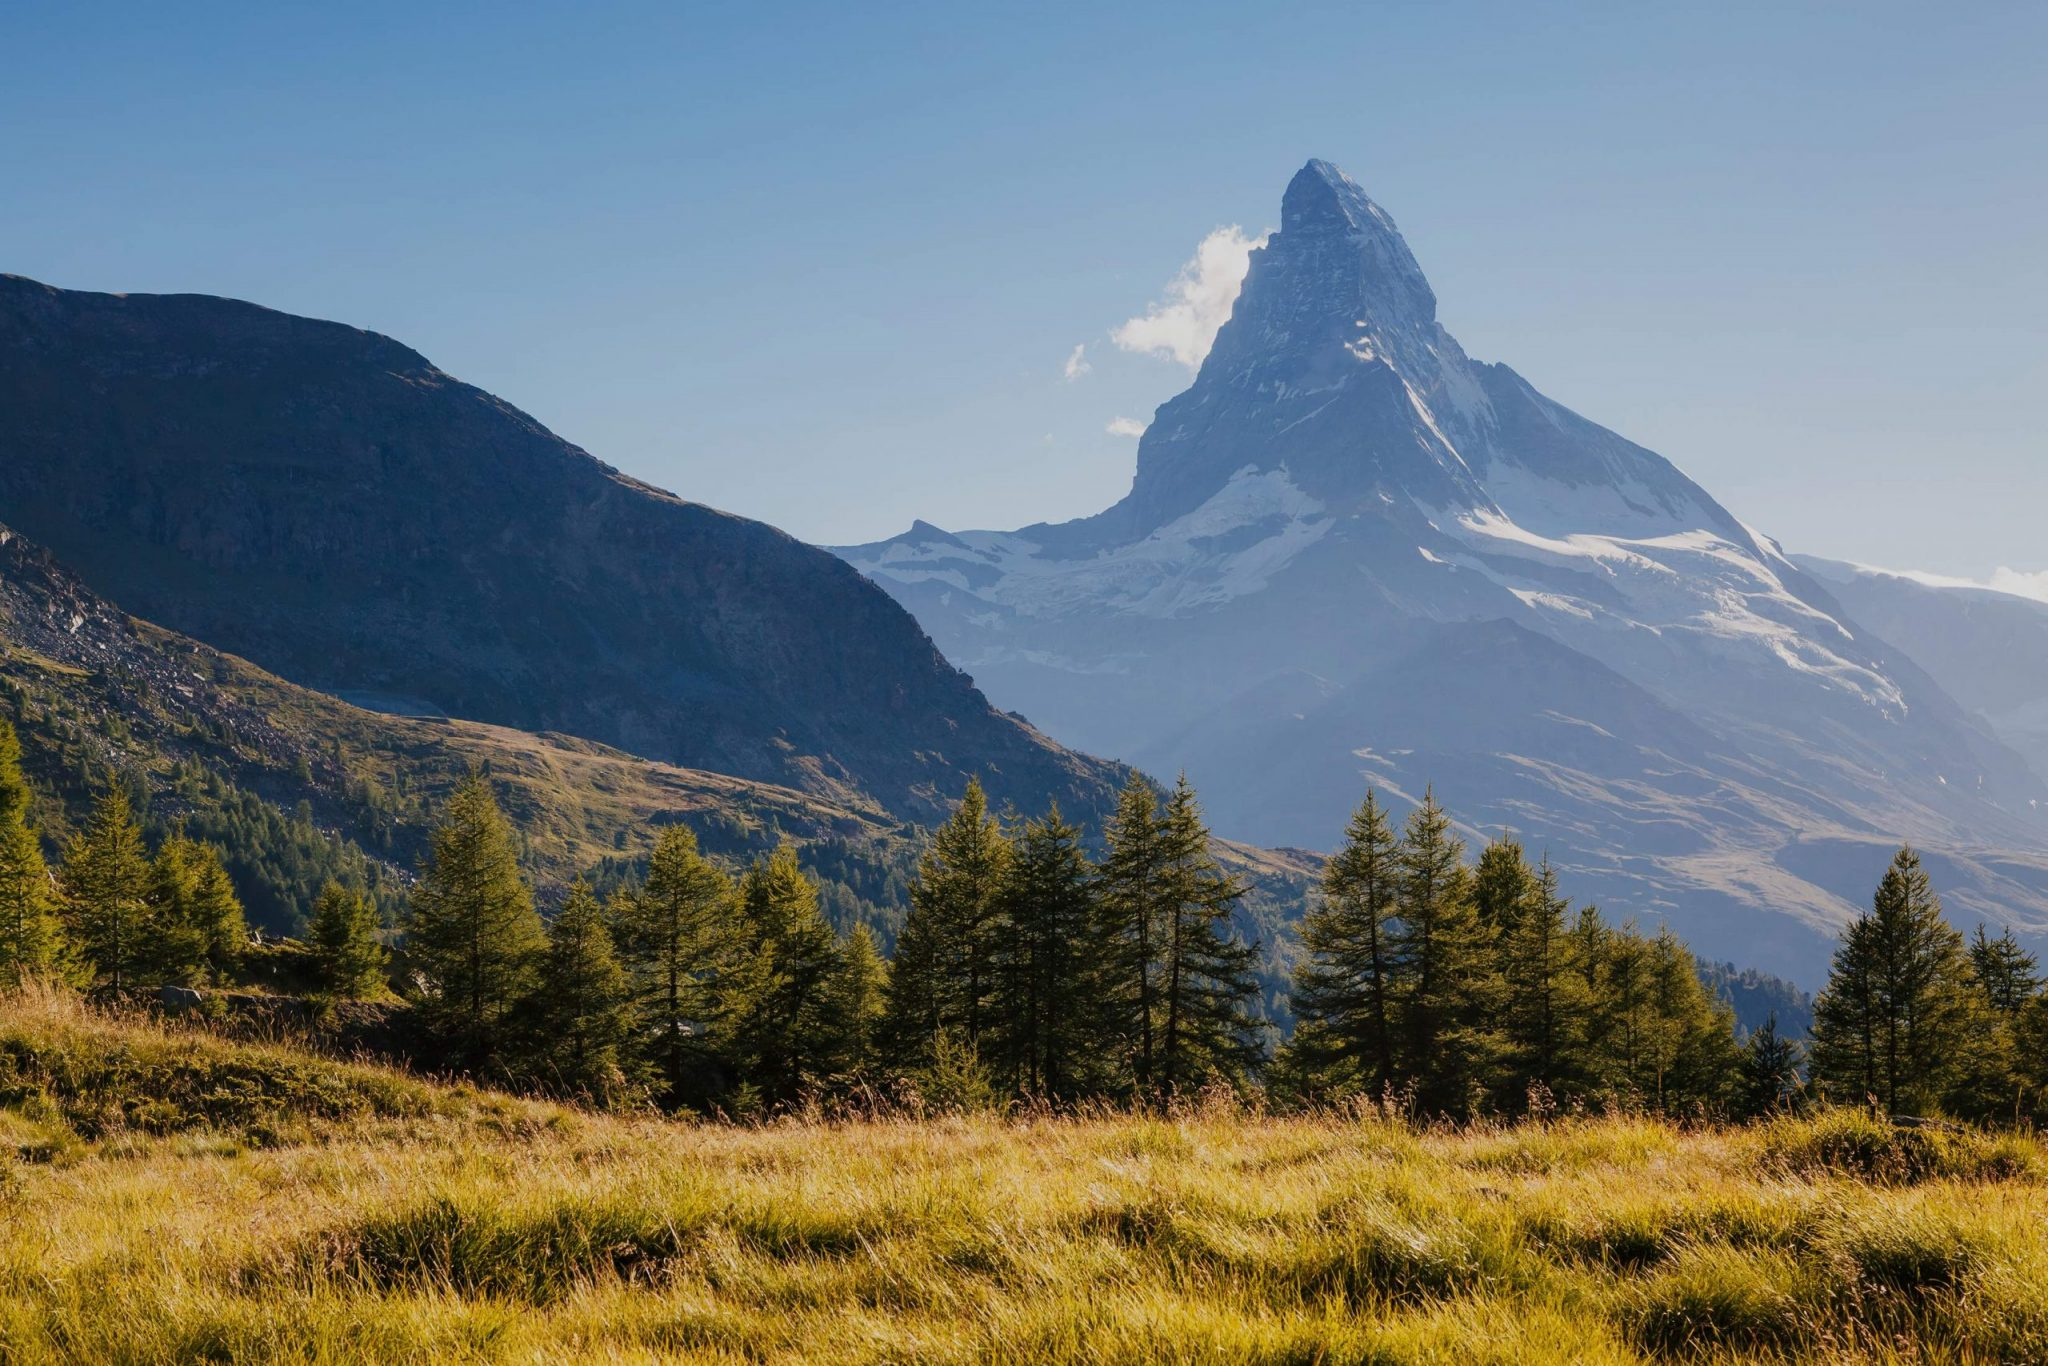 Great  panorama with famous peak Matterhorn in alpine valley. Popular tourist attraction. Dramatic and picturesque scene. Location place Swiss alps, Grindjisee, Valais region, Europe. Beauty world.